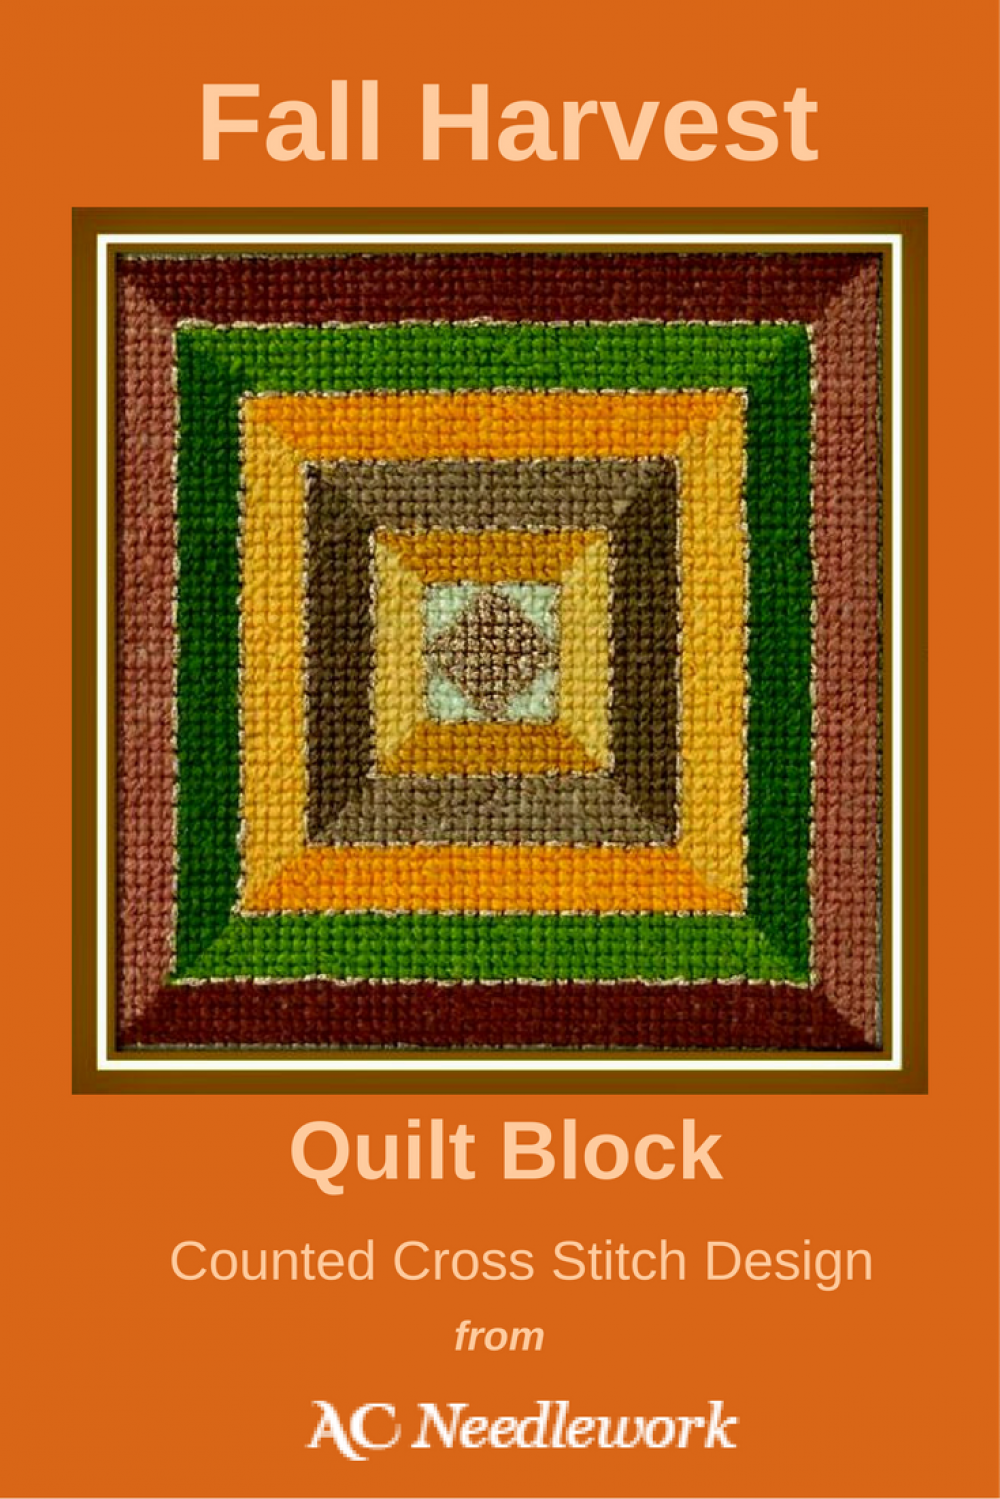 Celebrate Fall By Cross Stitching This Fall Harvest Quilt